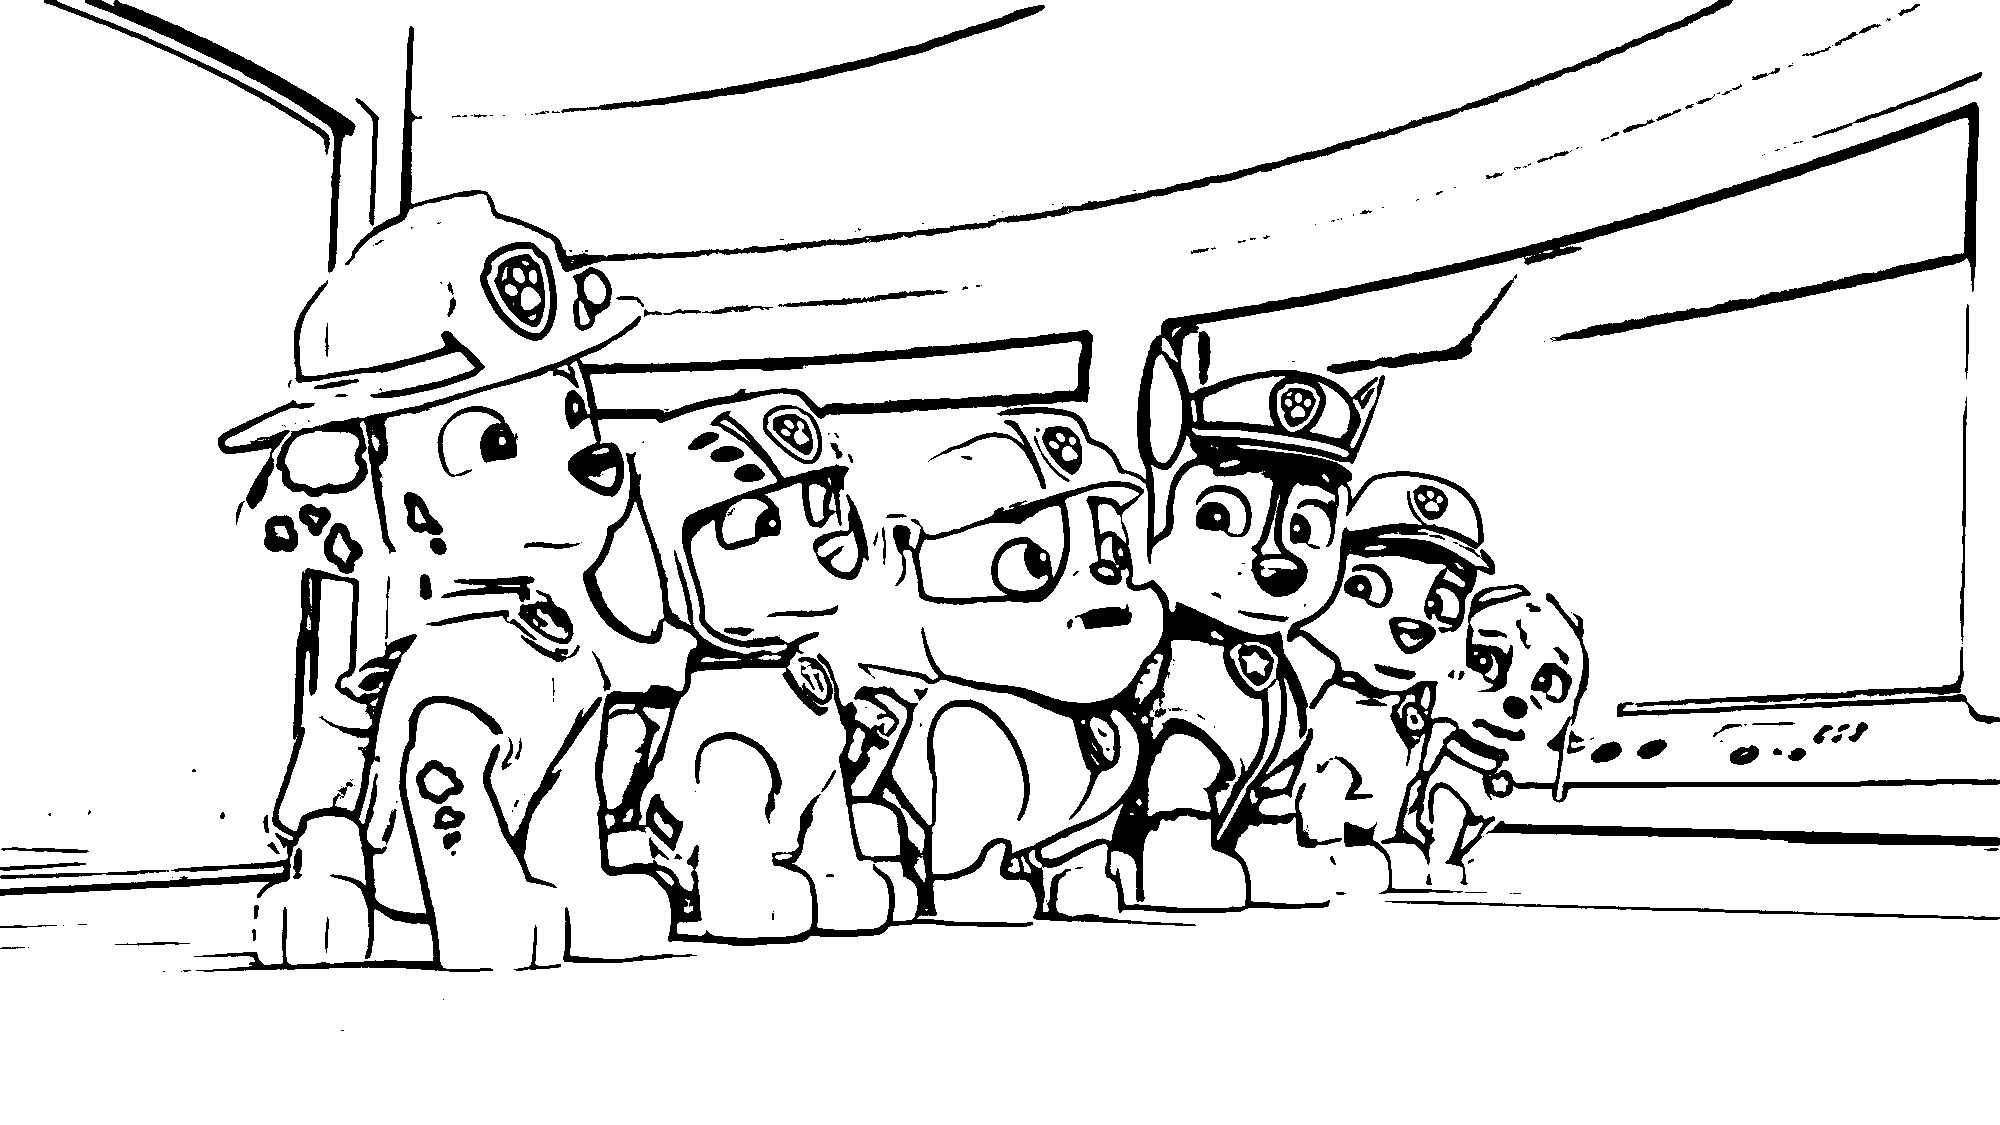 Paw.Patrol 000911543 135 Coloring Page